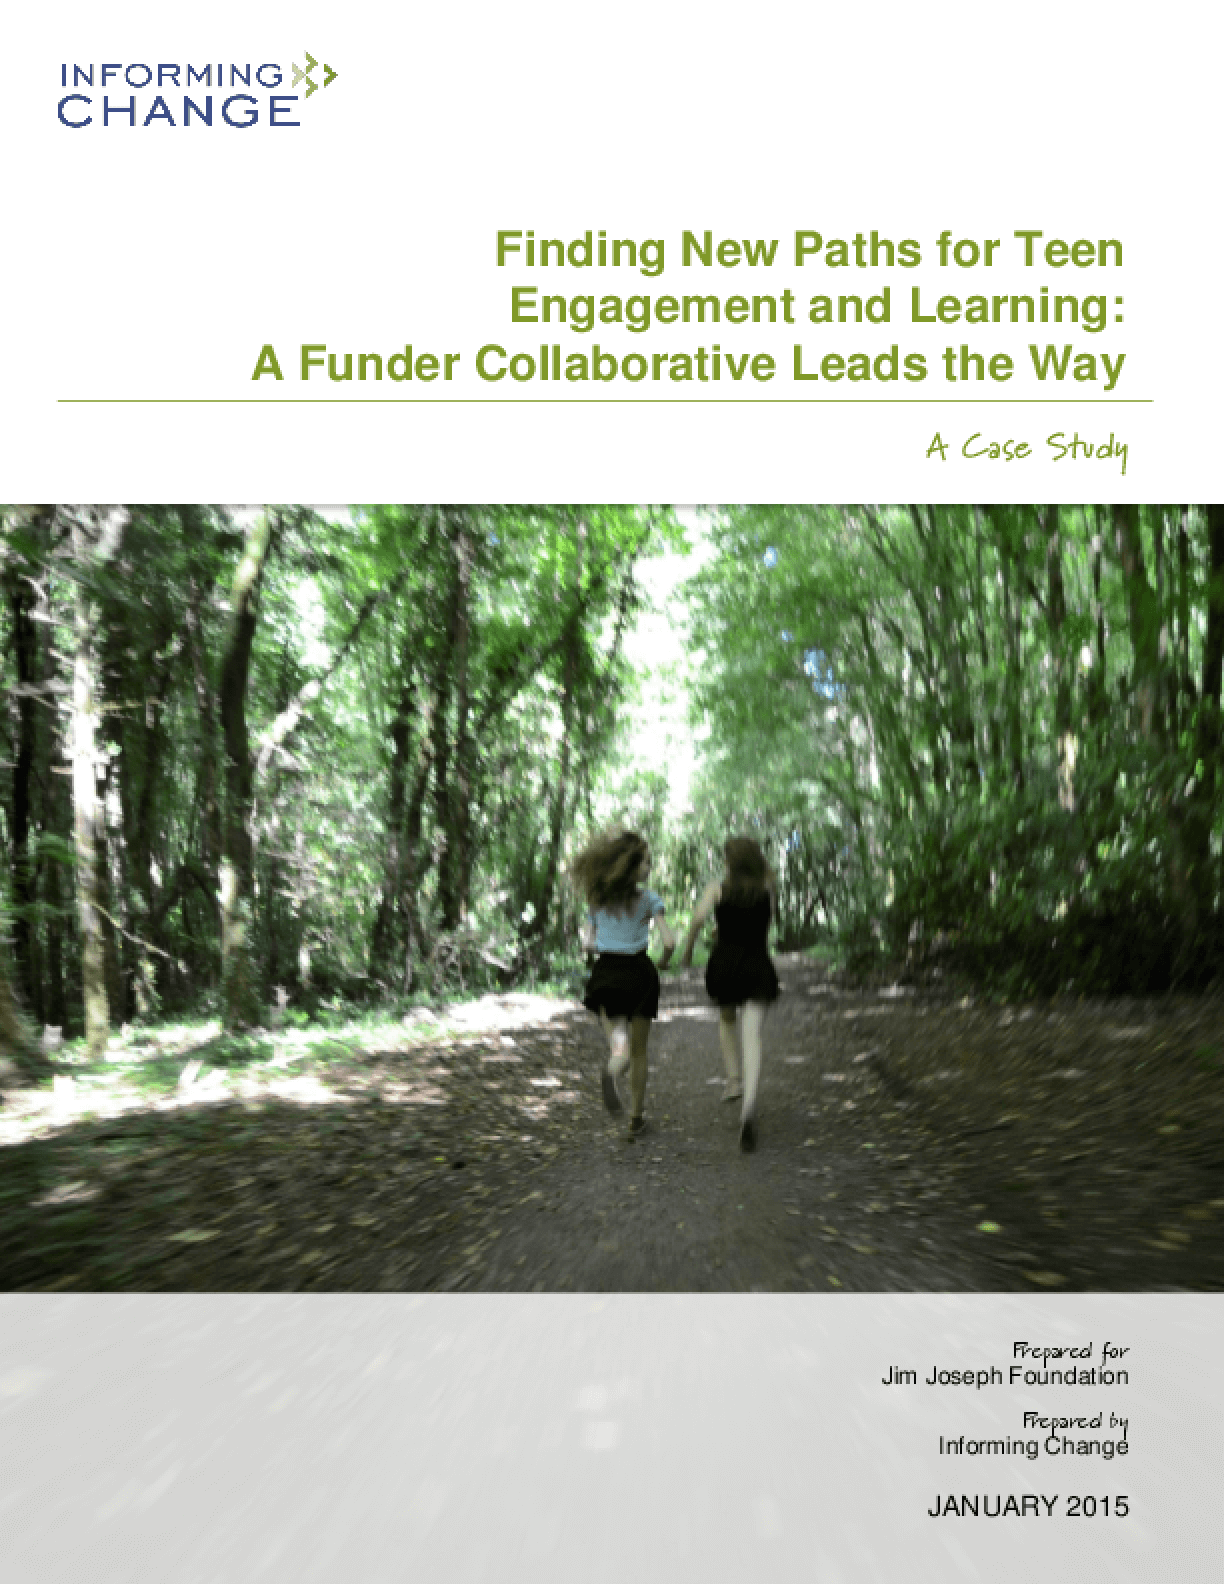 Finding New Paths for Teen Engagement and Learning: A Funder Collaborative Leads the Way